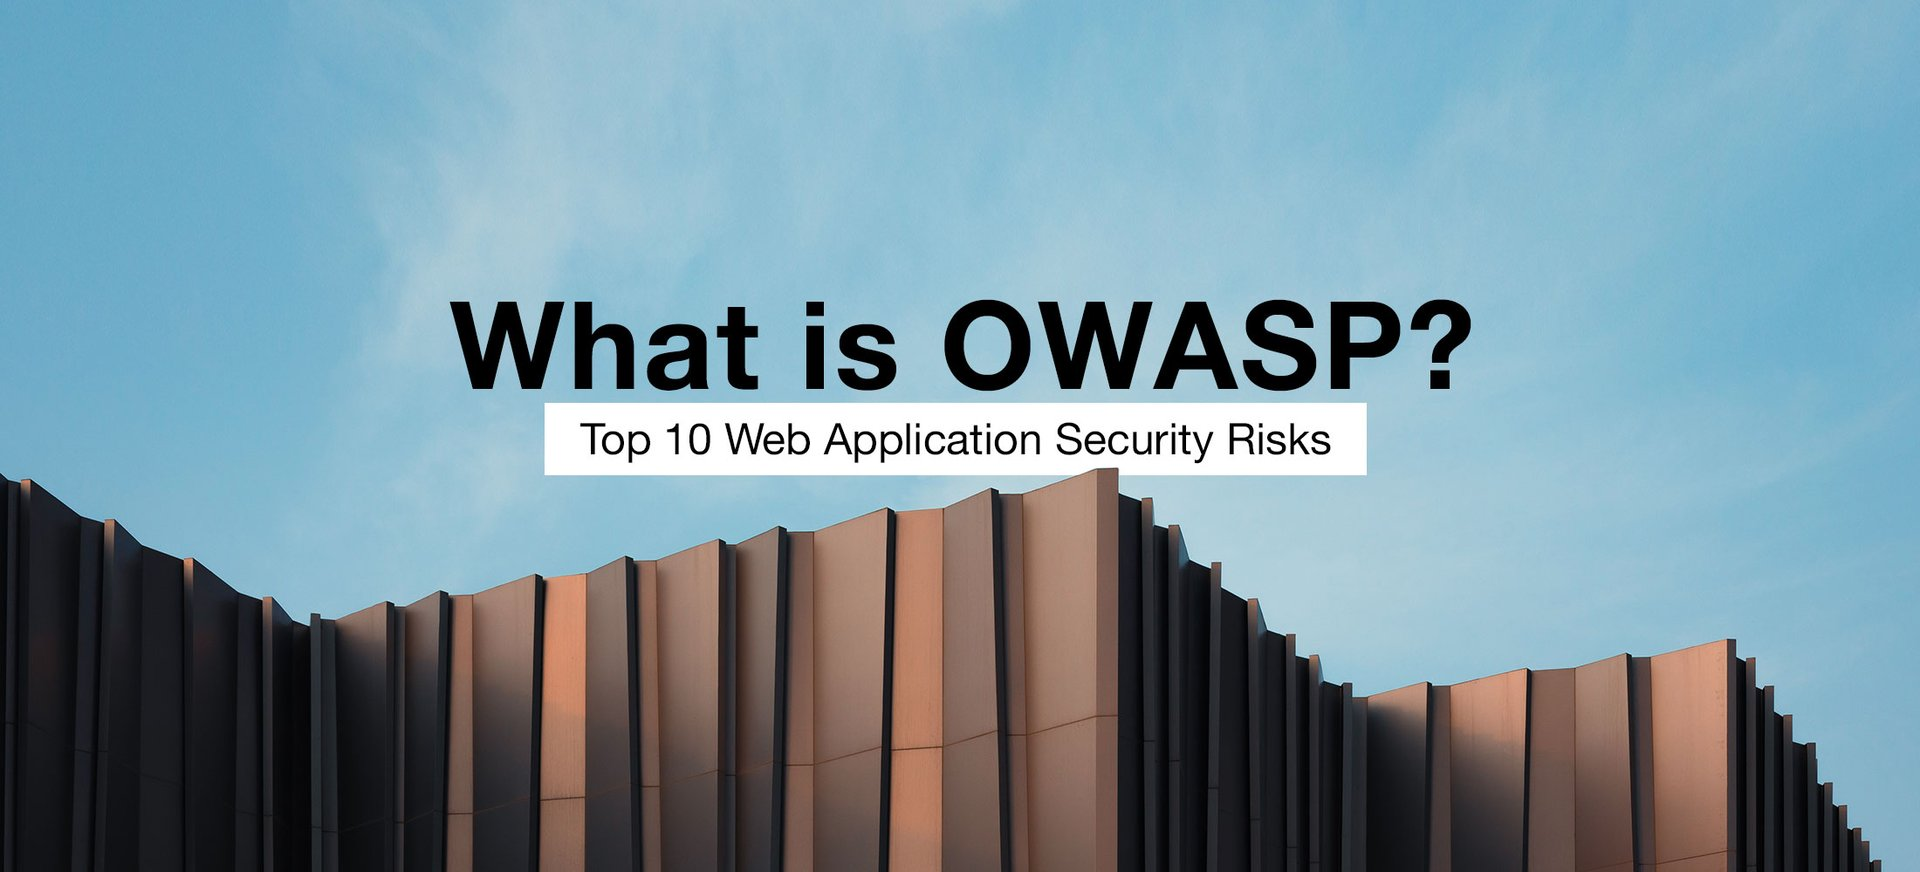 What is OWASP? Top 10 Web Application Security Risks.